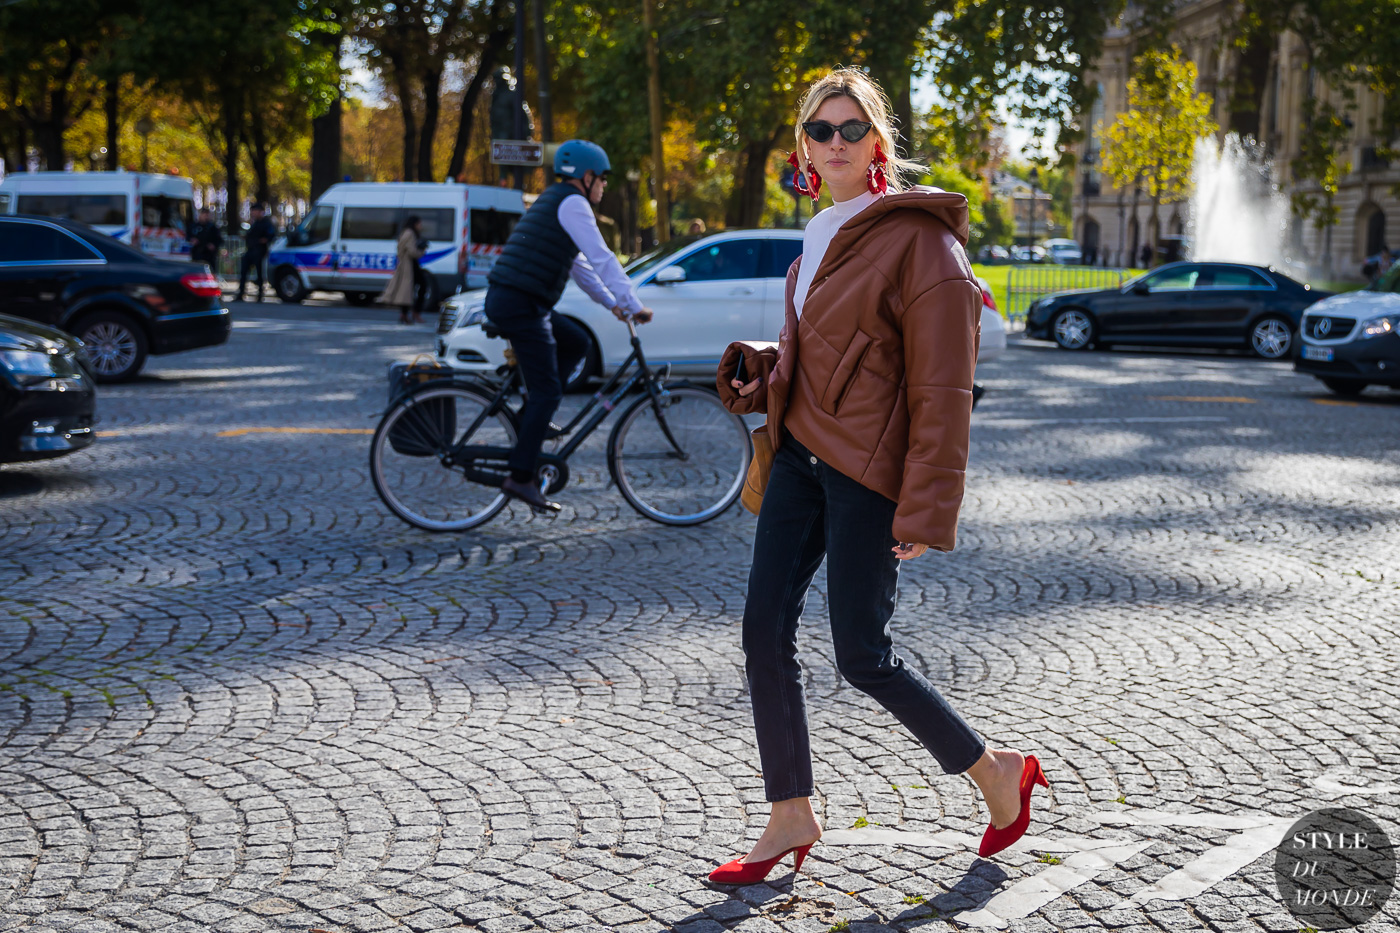 Camille Charriere by STYLEDUMONDE Street Style Fashion Photography_48A3143